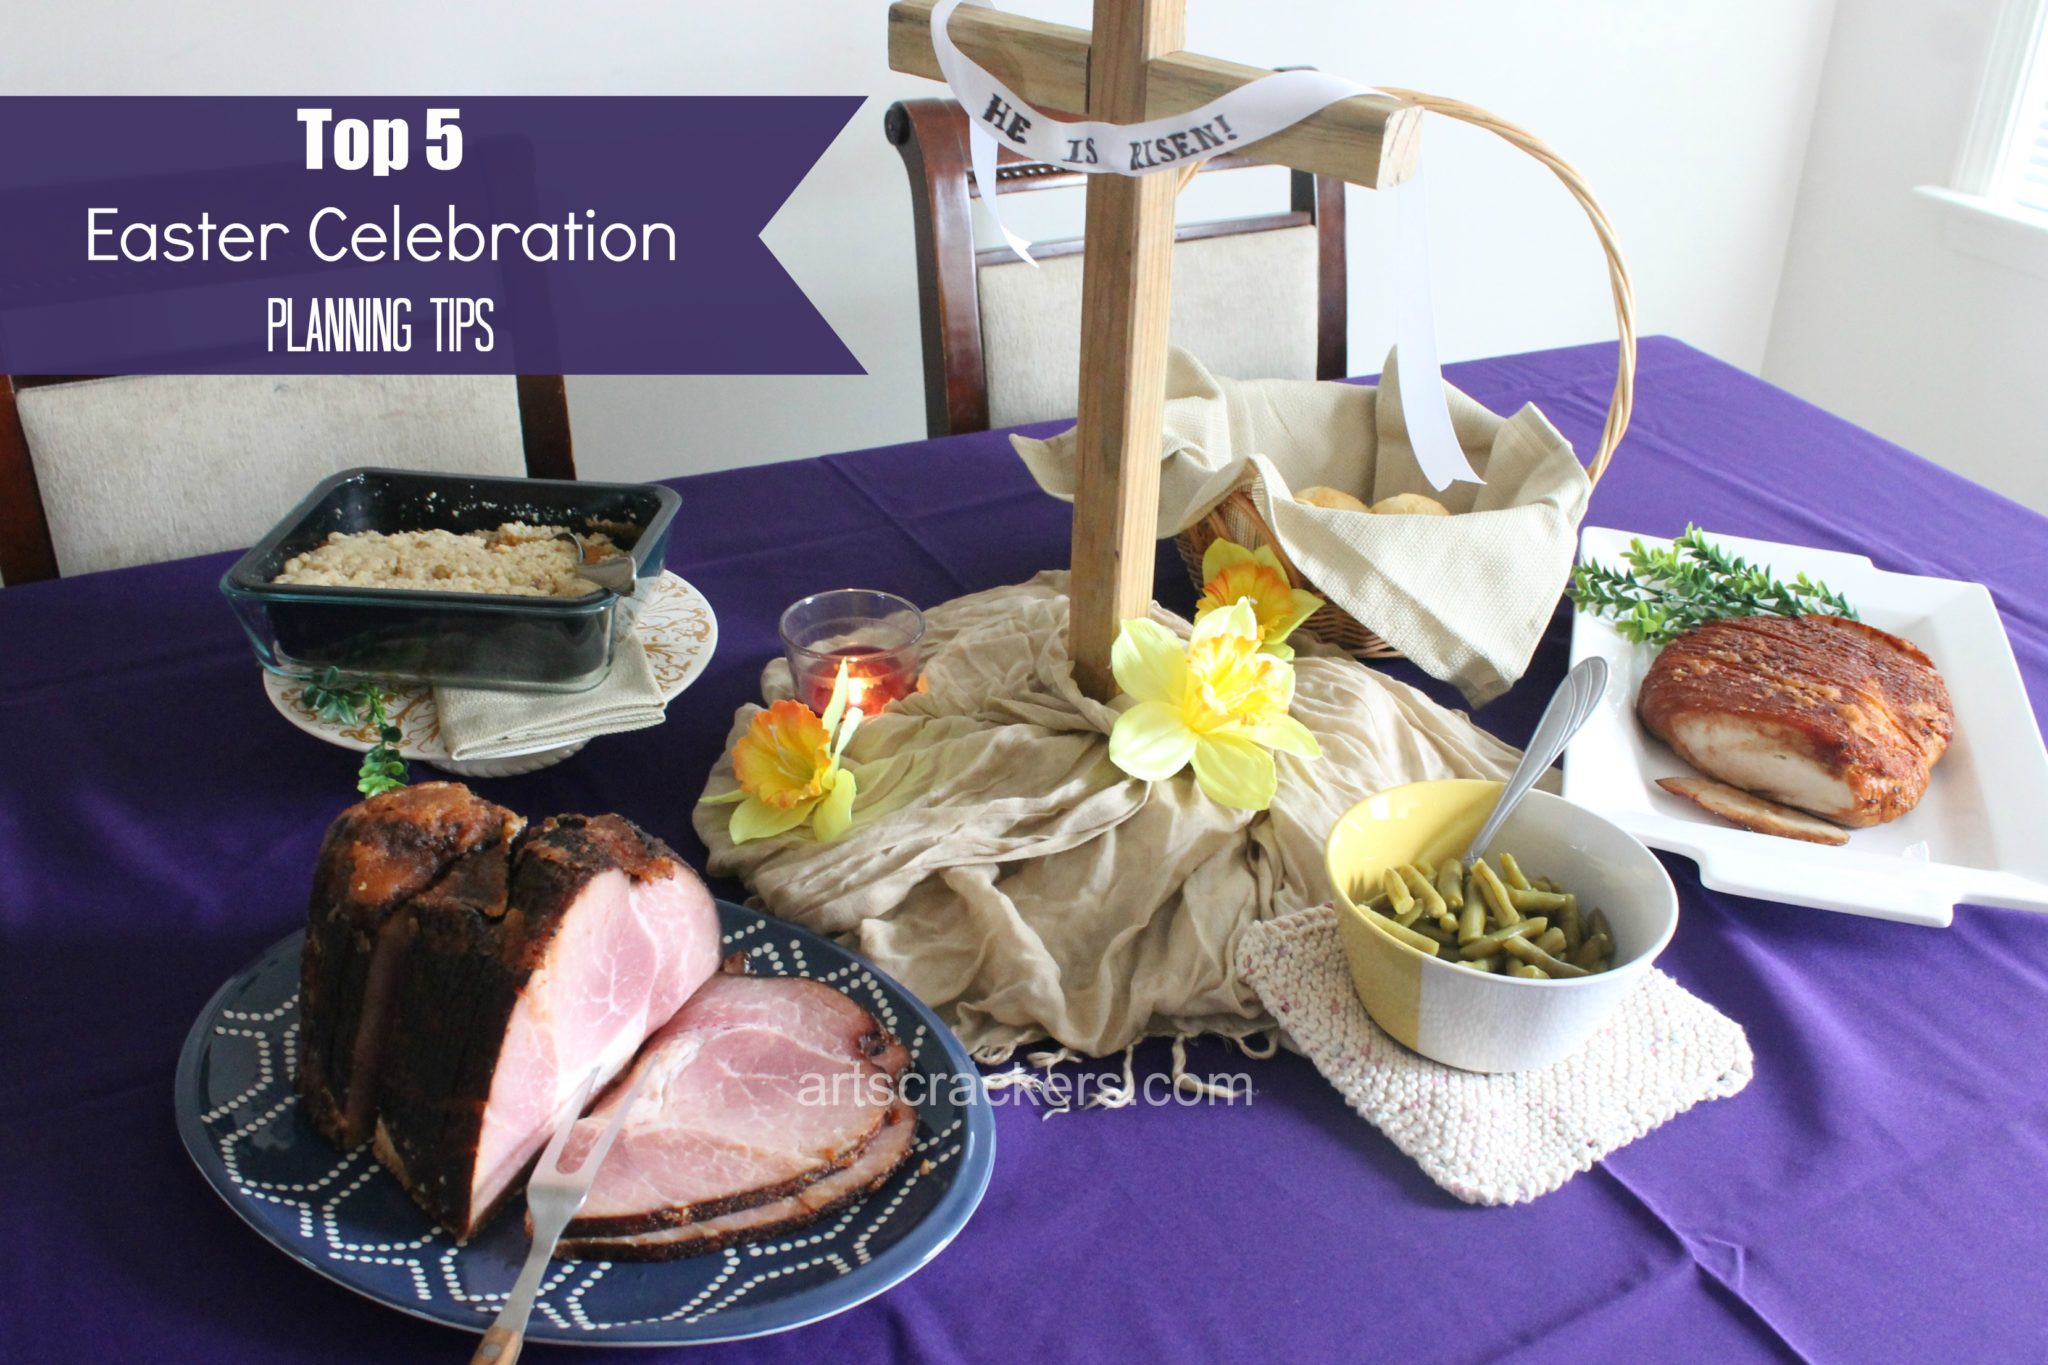 Top 5 Easter Celebration Planning Tips. Click to read them.